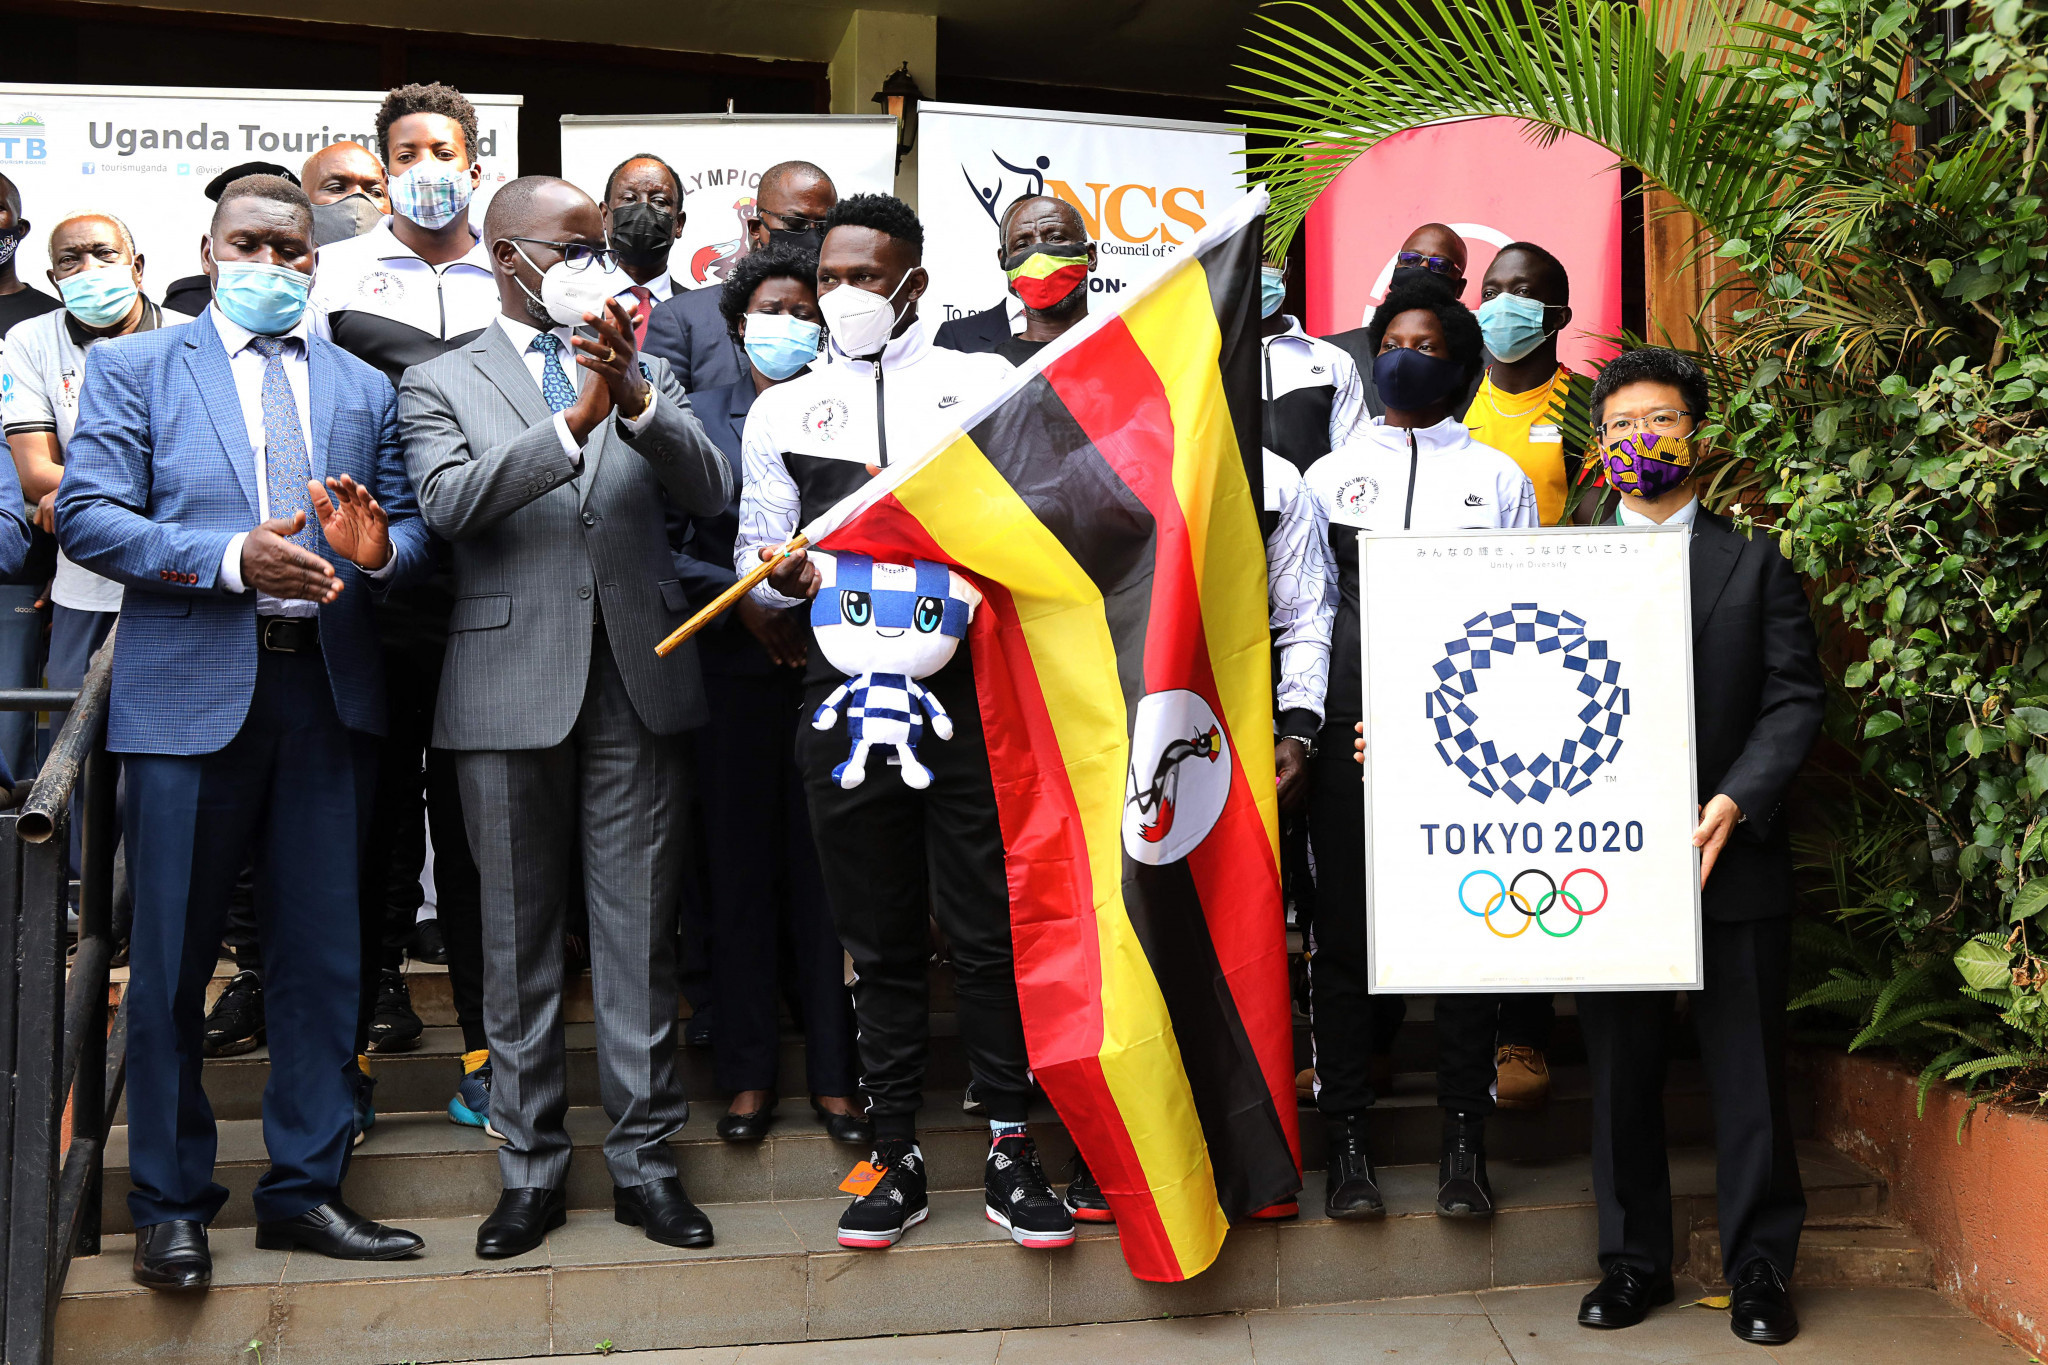 Uganda's Tokyo 2020 team has been the subject of drama before the Games have even begun ©Getty Images